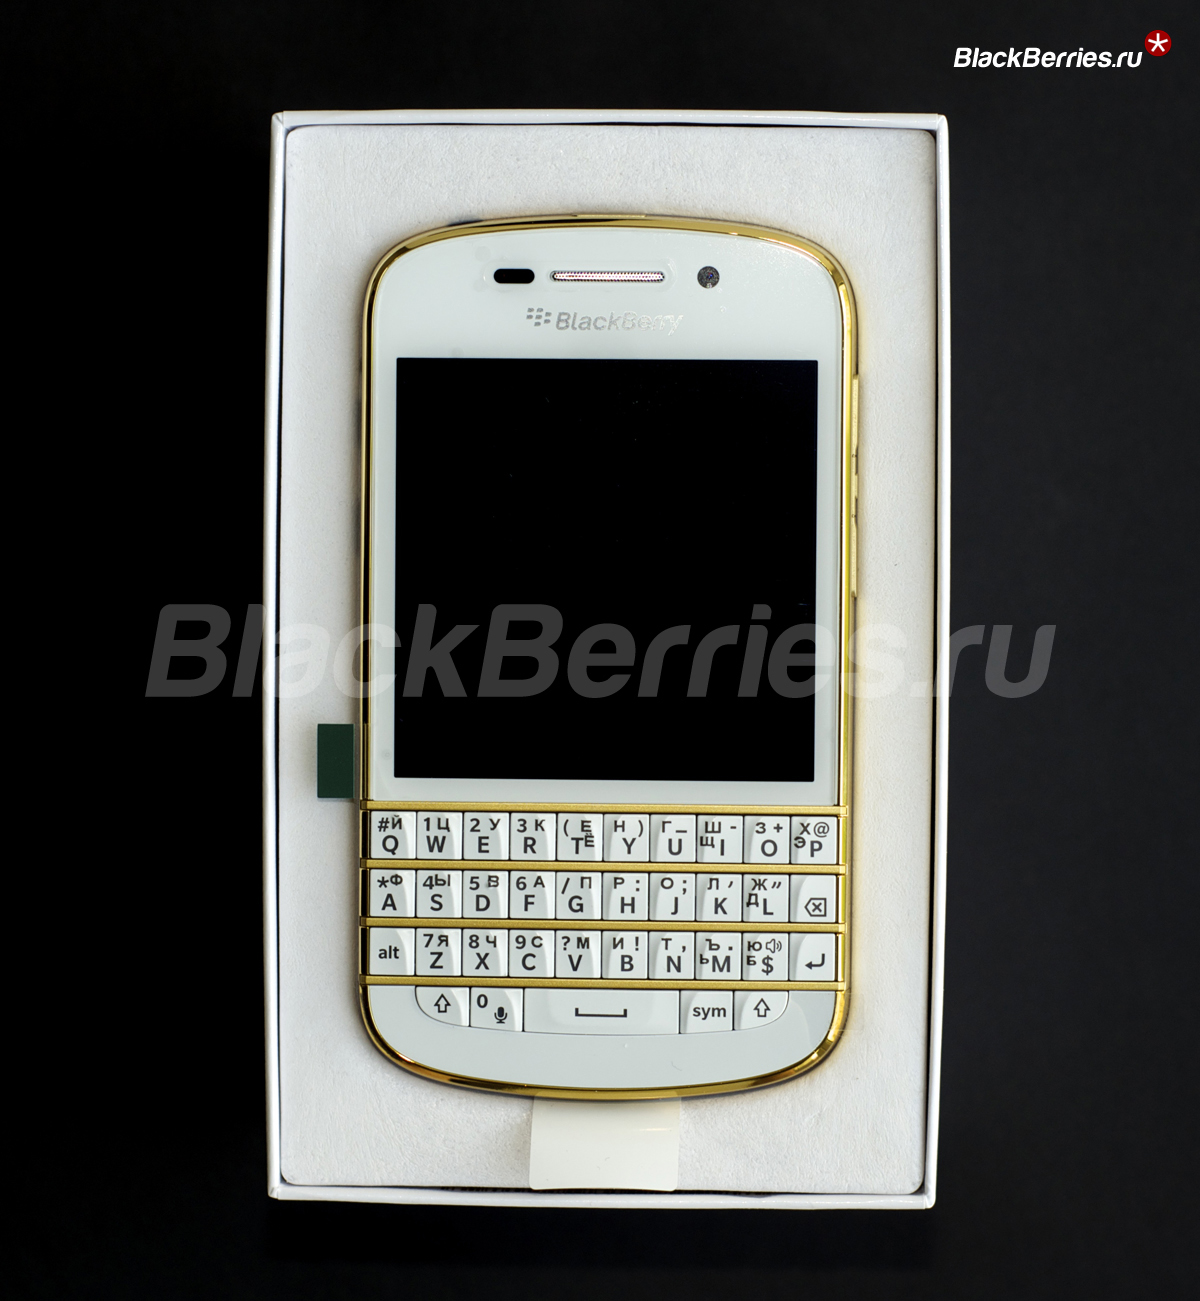 BlackBerry-Q10-Special-Edition-89